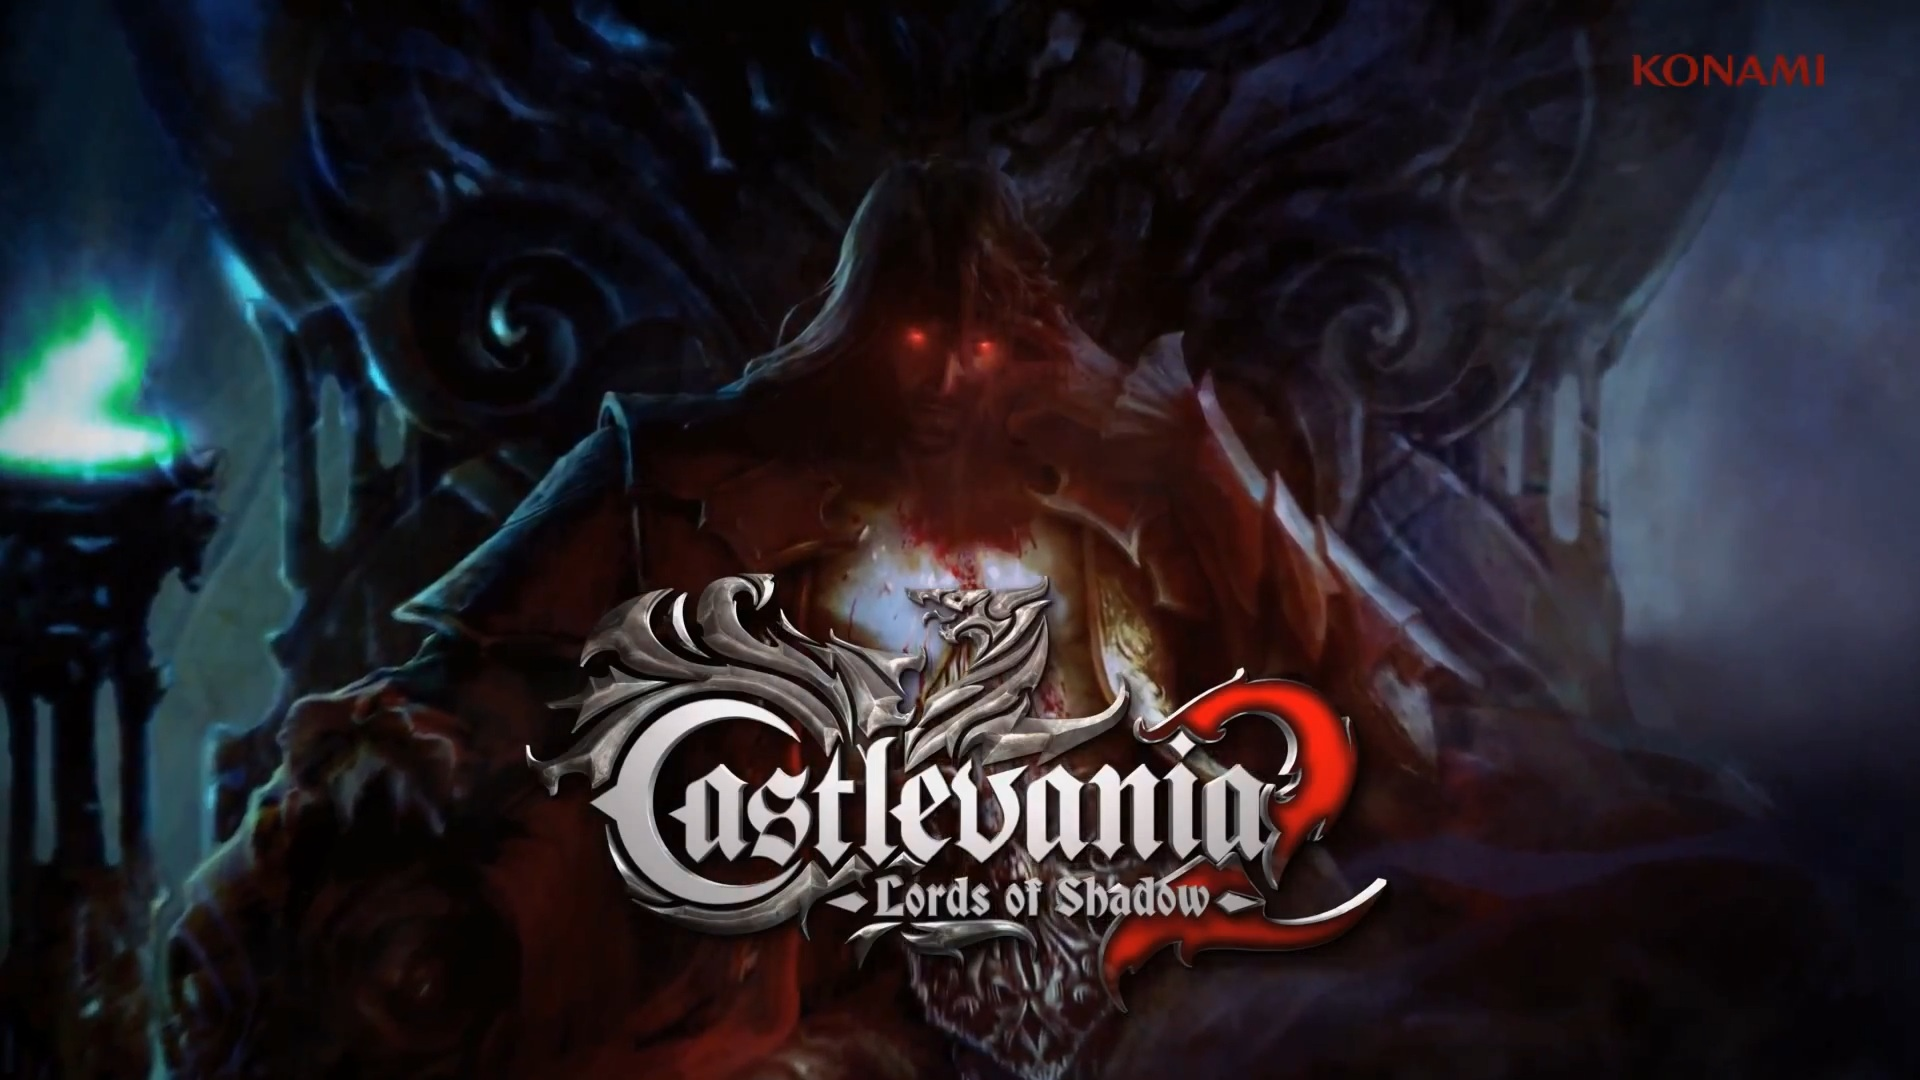 2012 VGA Castlevania Lords of Shadow 2 cinematic trailer rise of Dracul Belmont